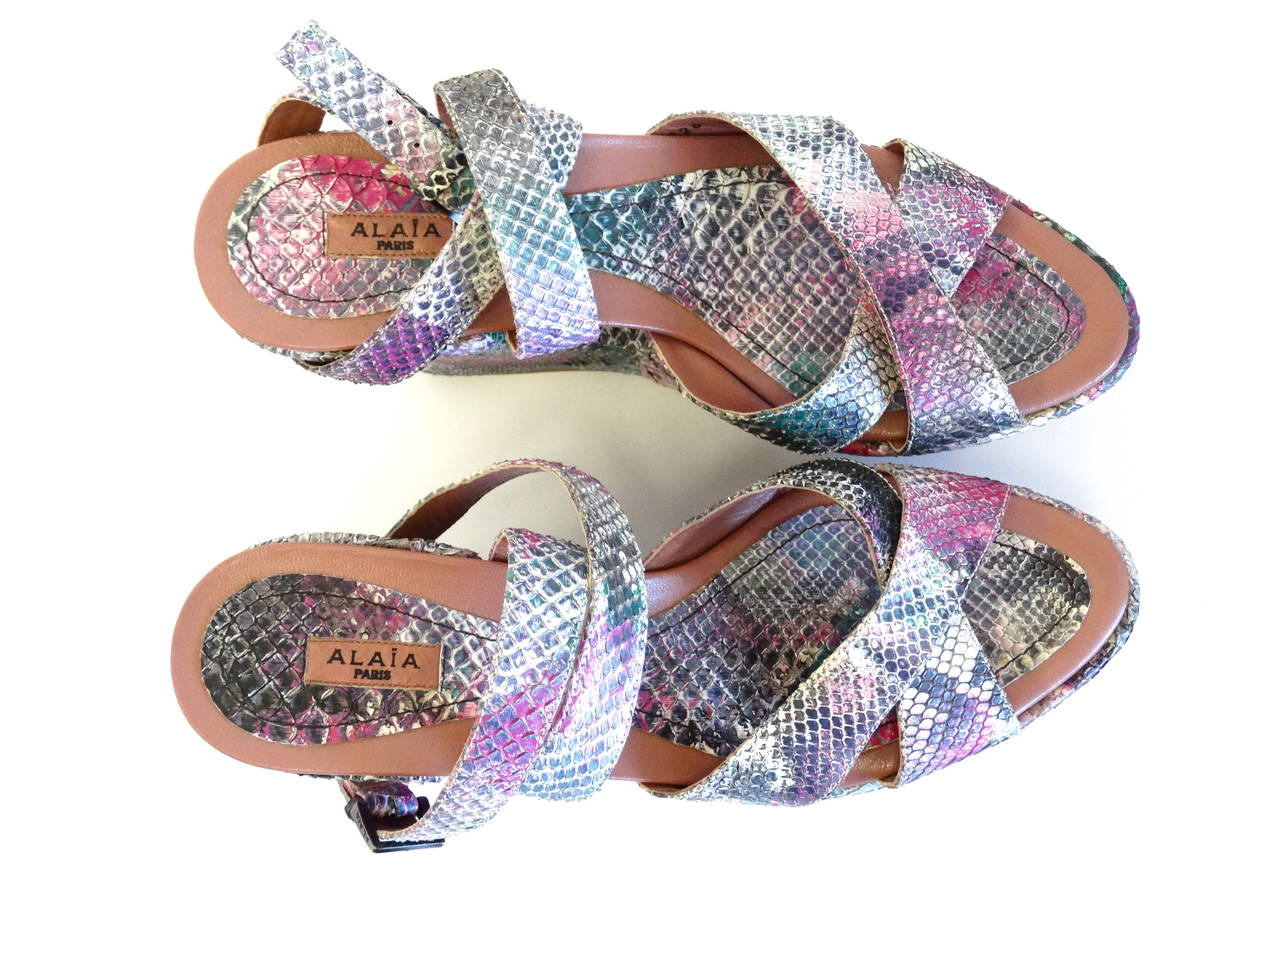 Ala 239 A Paris Quot Calzature Quot Donna Wedge In Snakeskin For Sale